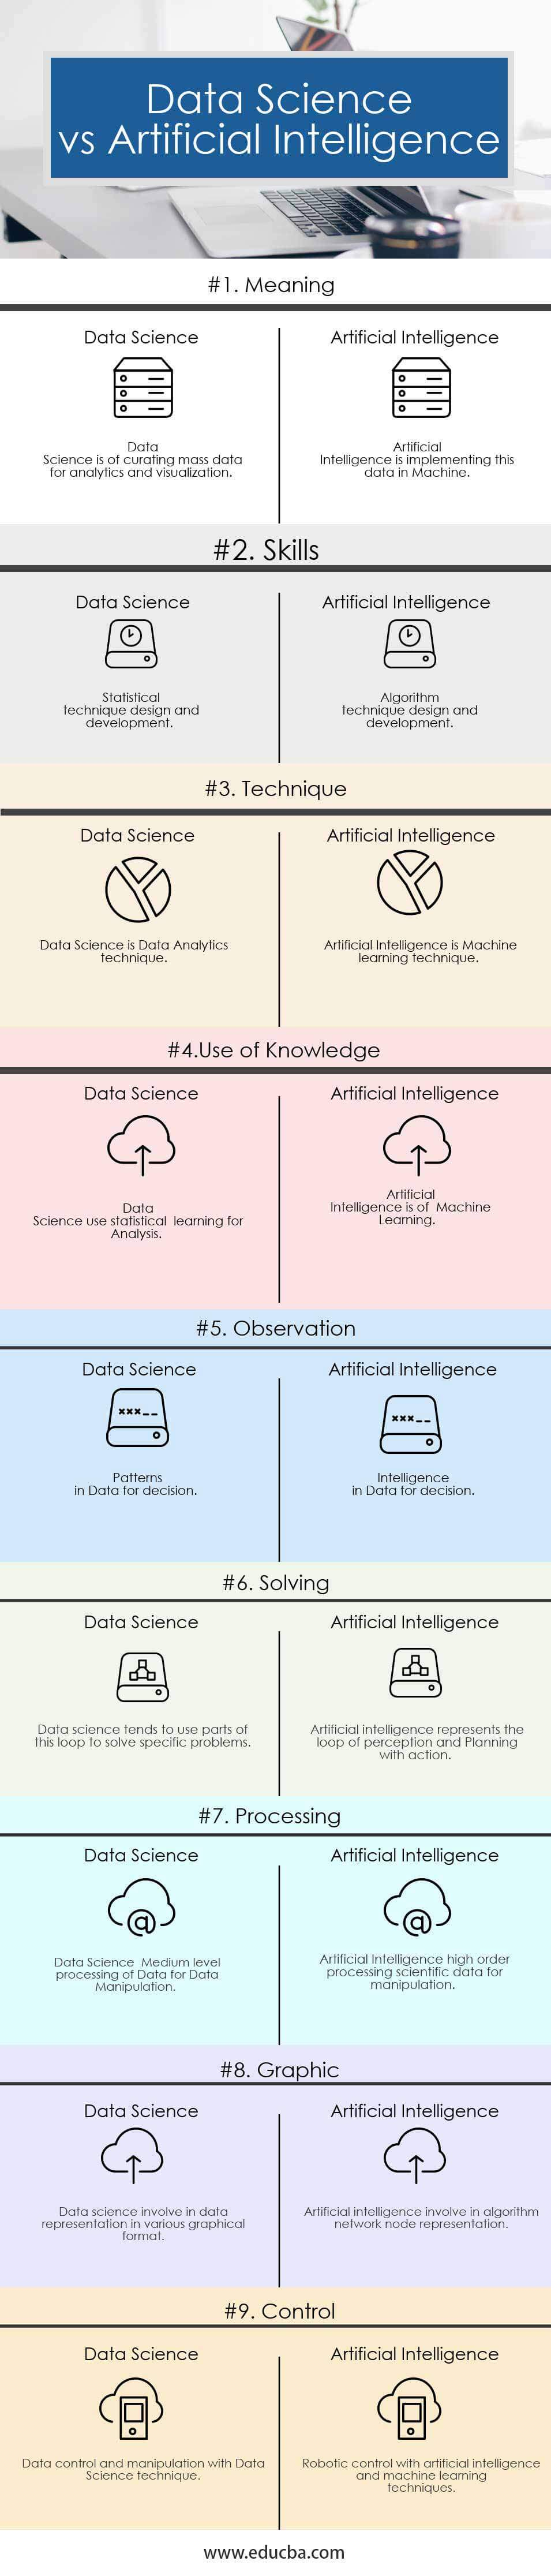 Data Science vs Artificial Intelligence